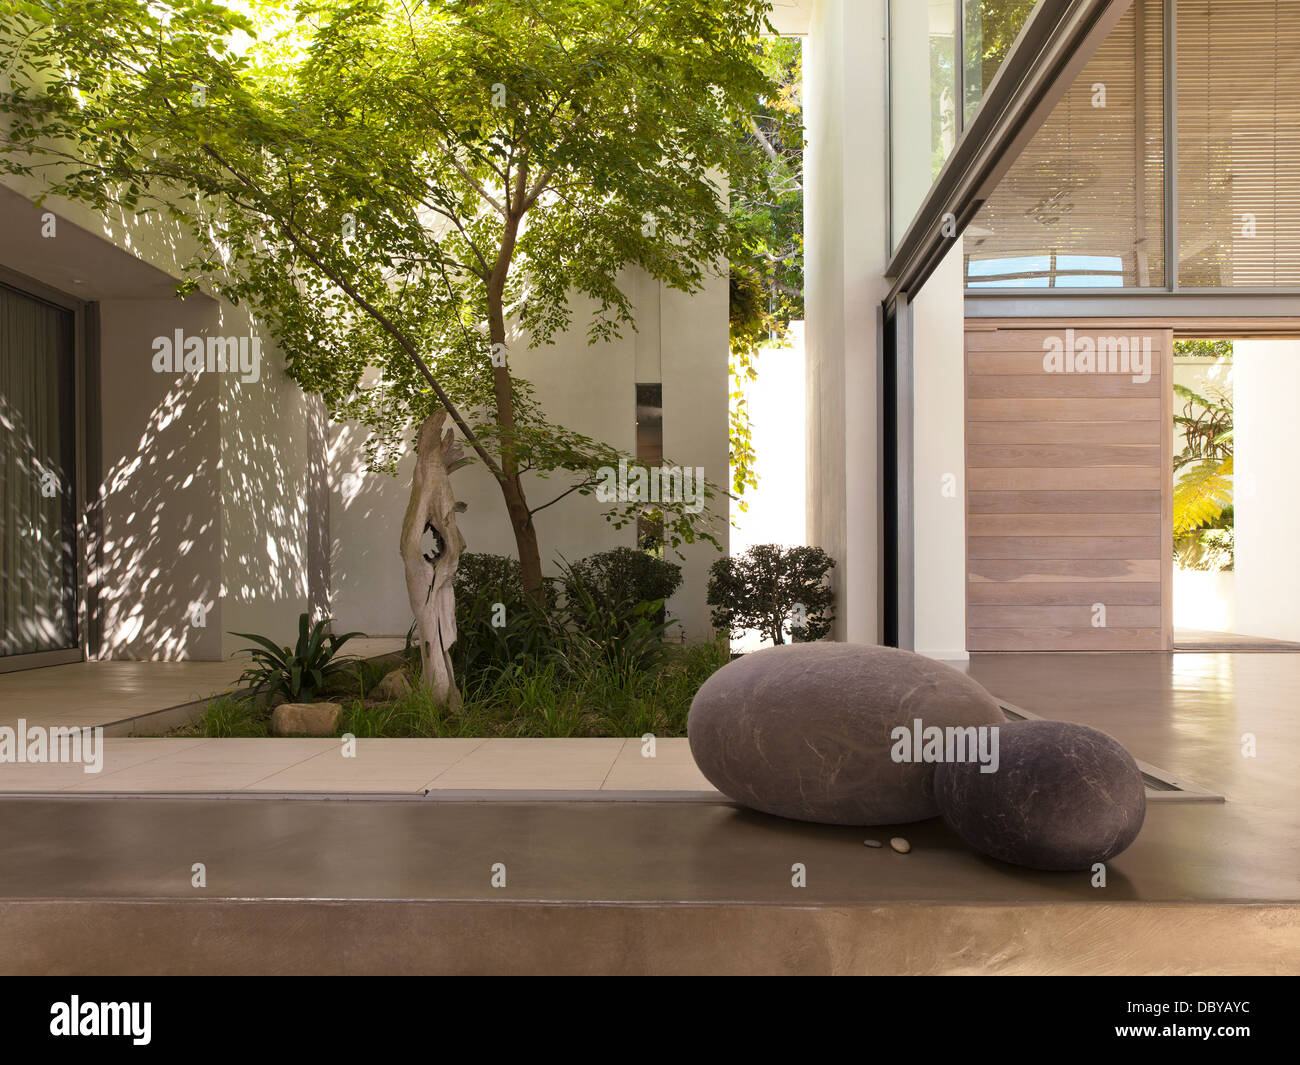 Courtyard of modern house - Stock Image